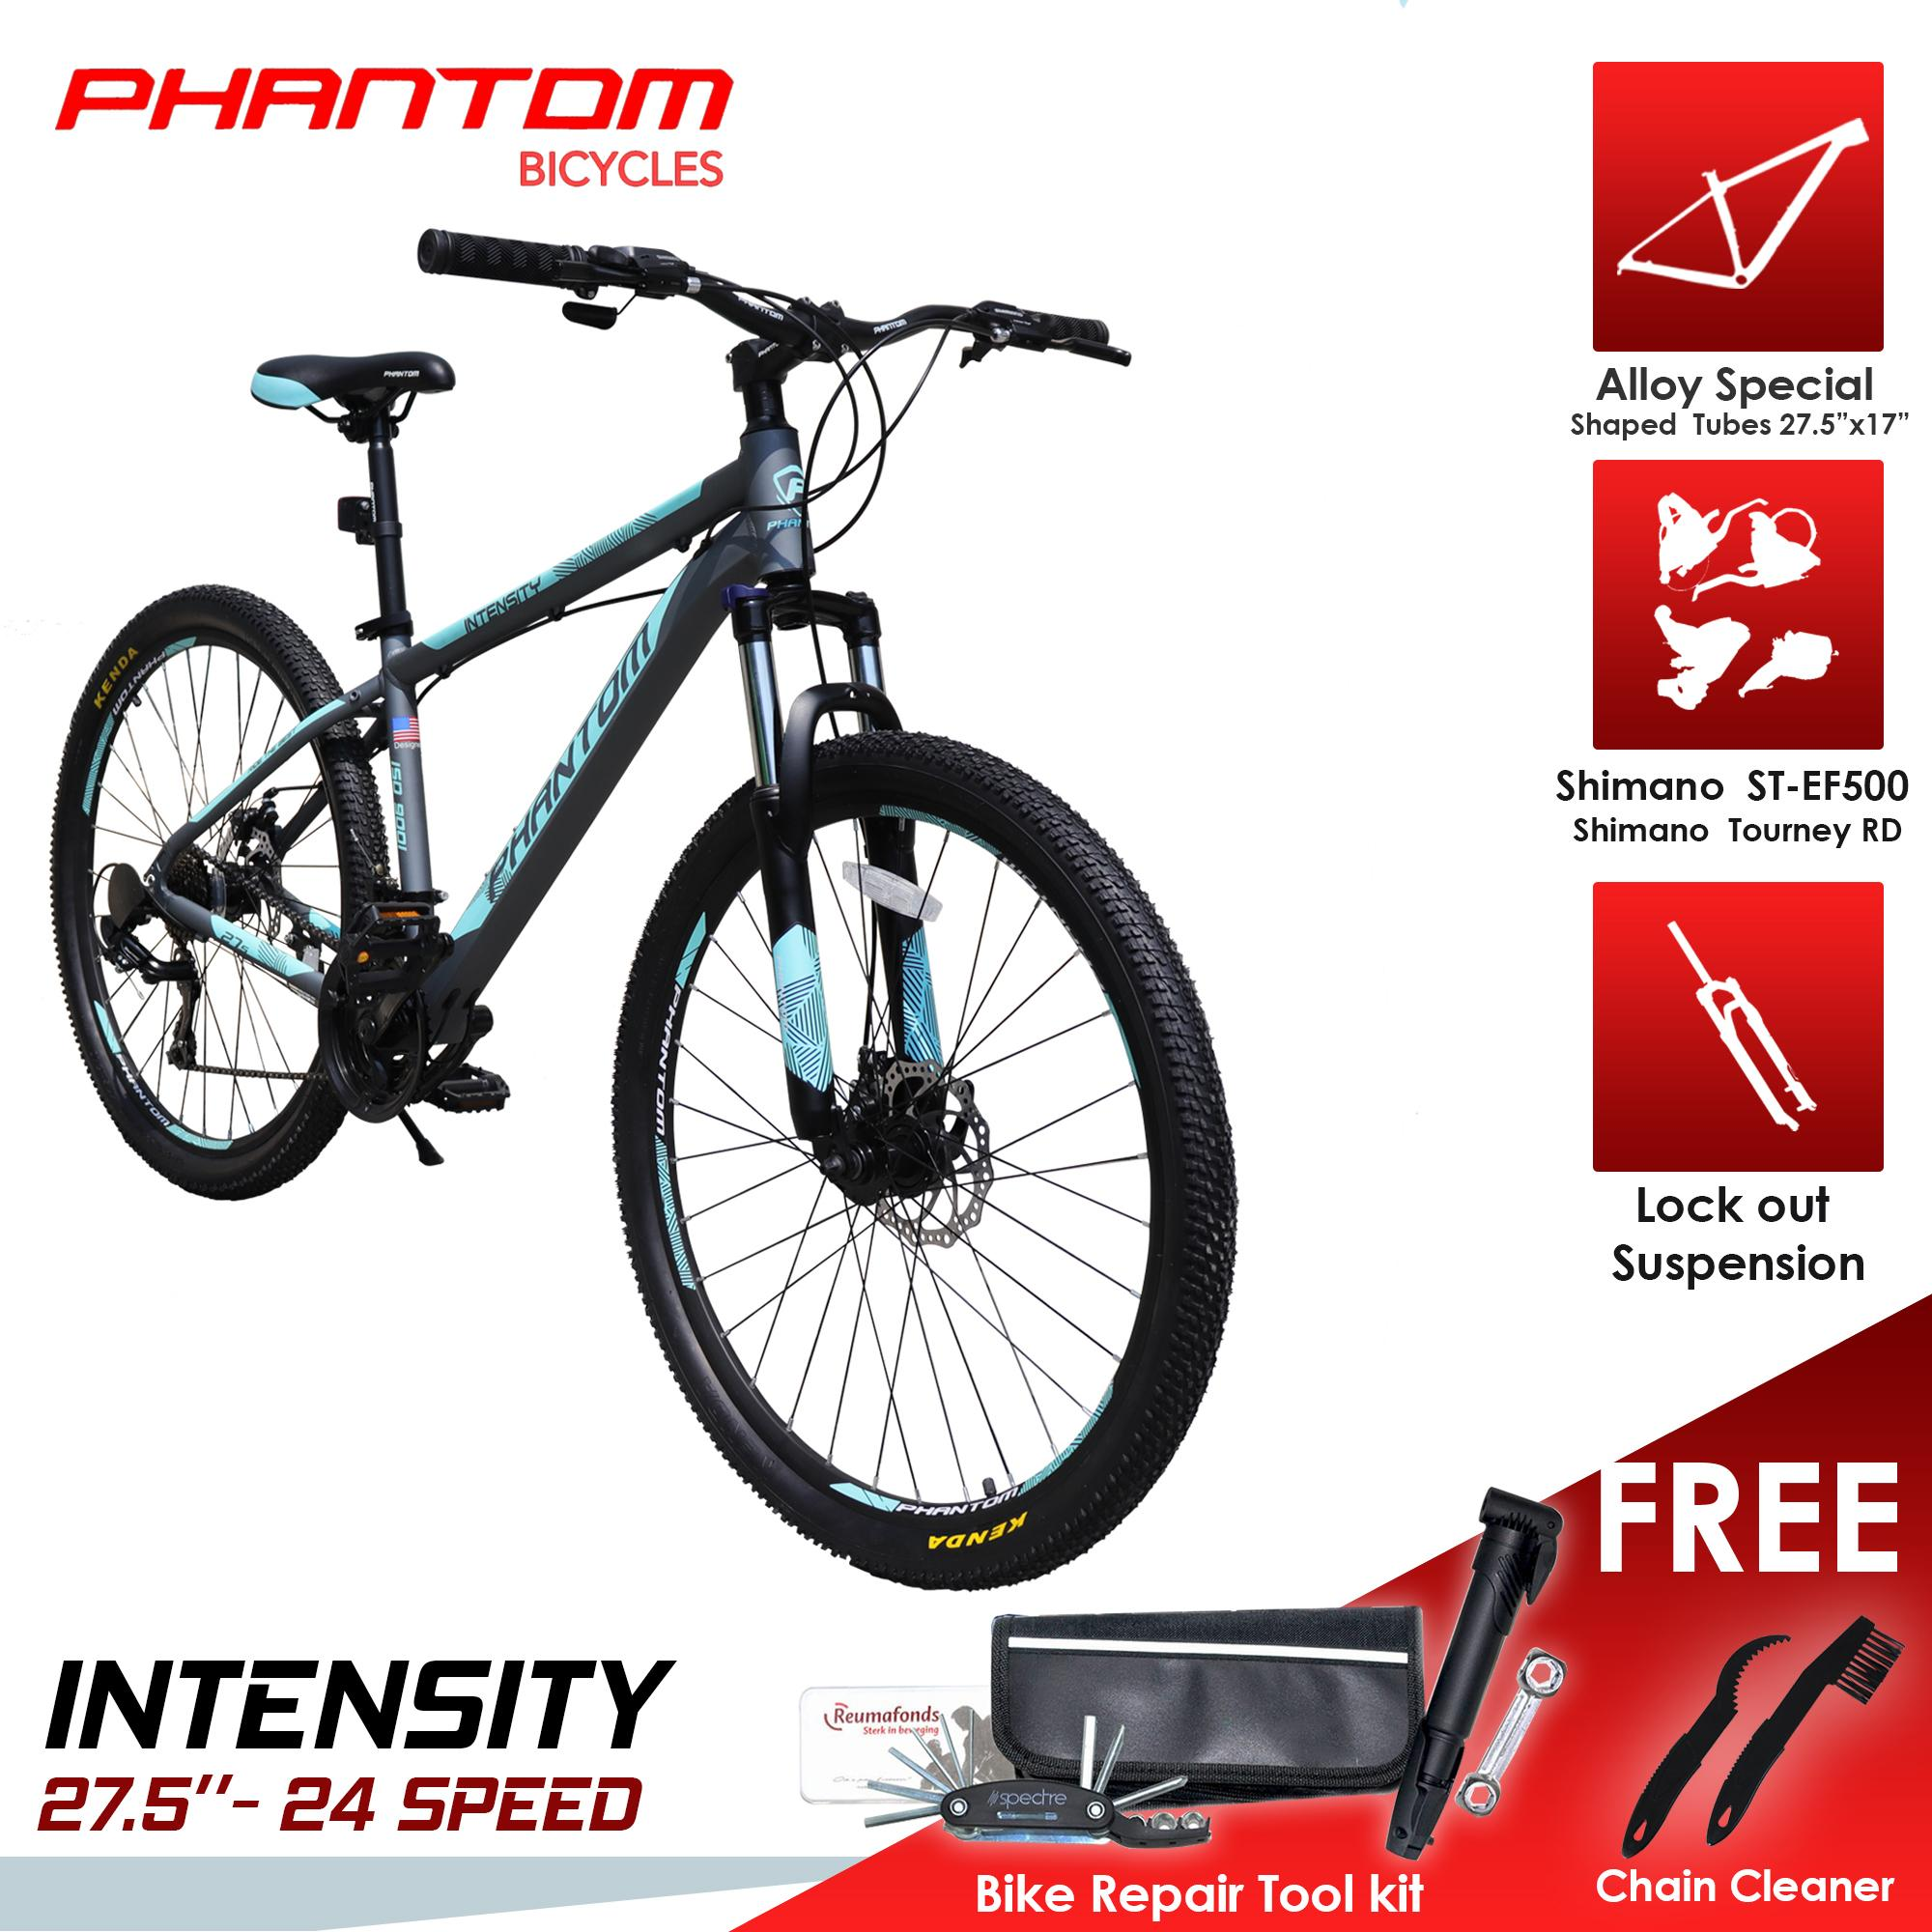 "PHANTOM INTENSITY 27 5""- 24 SPEED ALLOY FRAME Mountain Bike with FREE BIKE  REPAIR TOOL KIT and 2 in 1 CHAIN CLEANER"